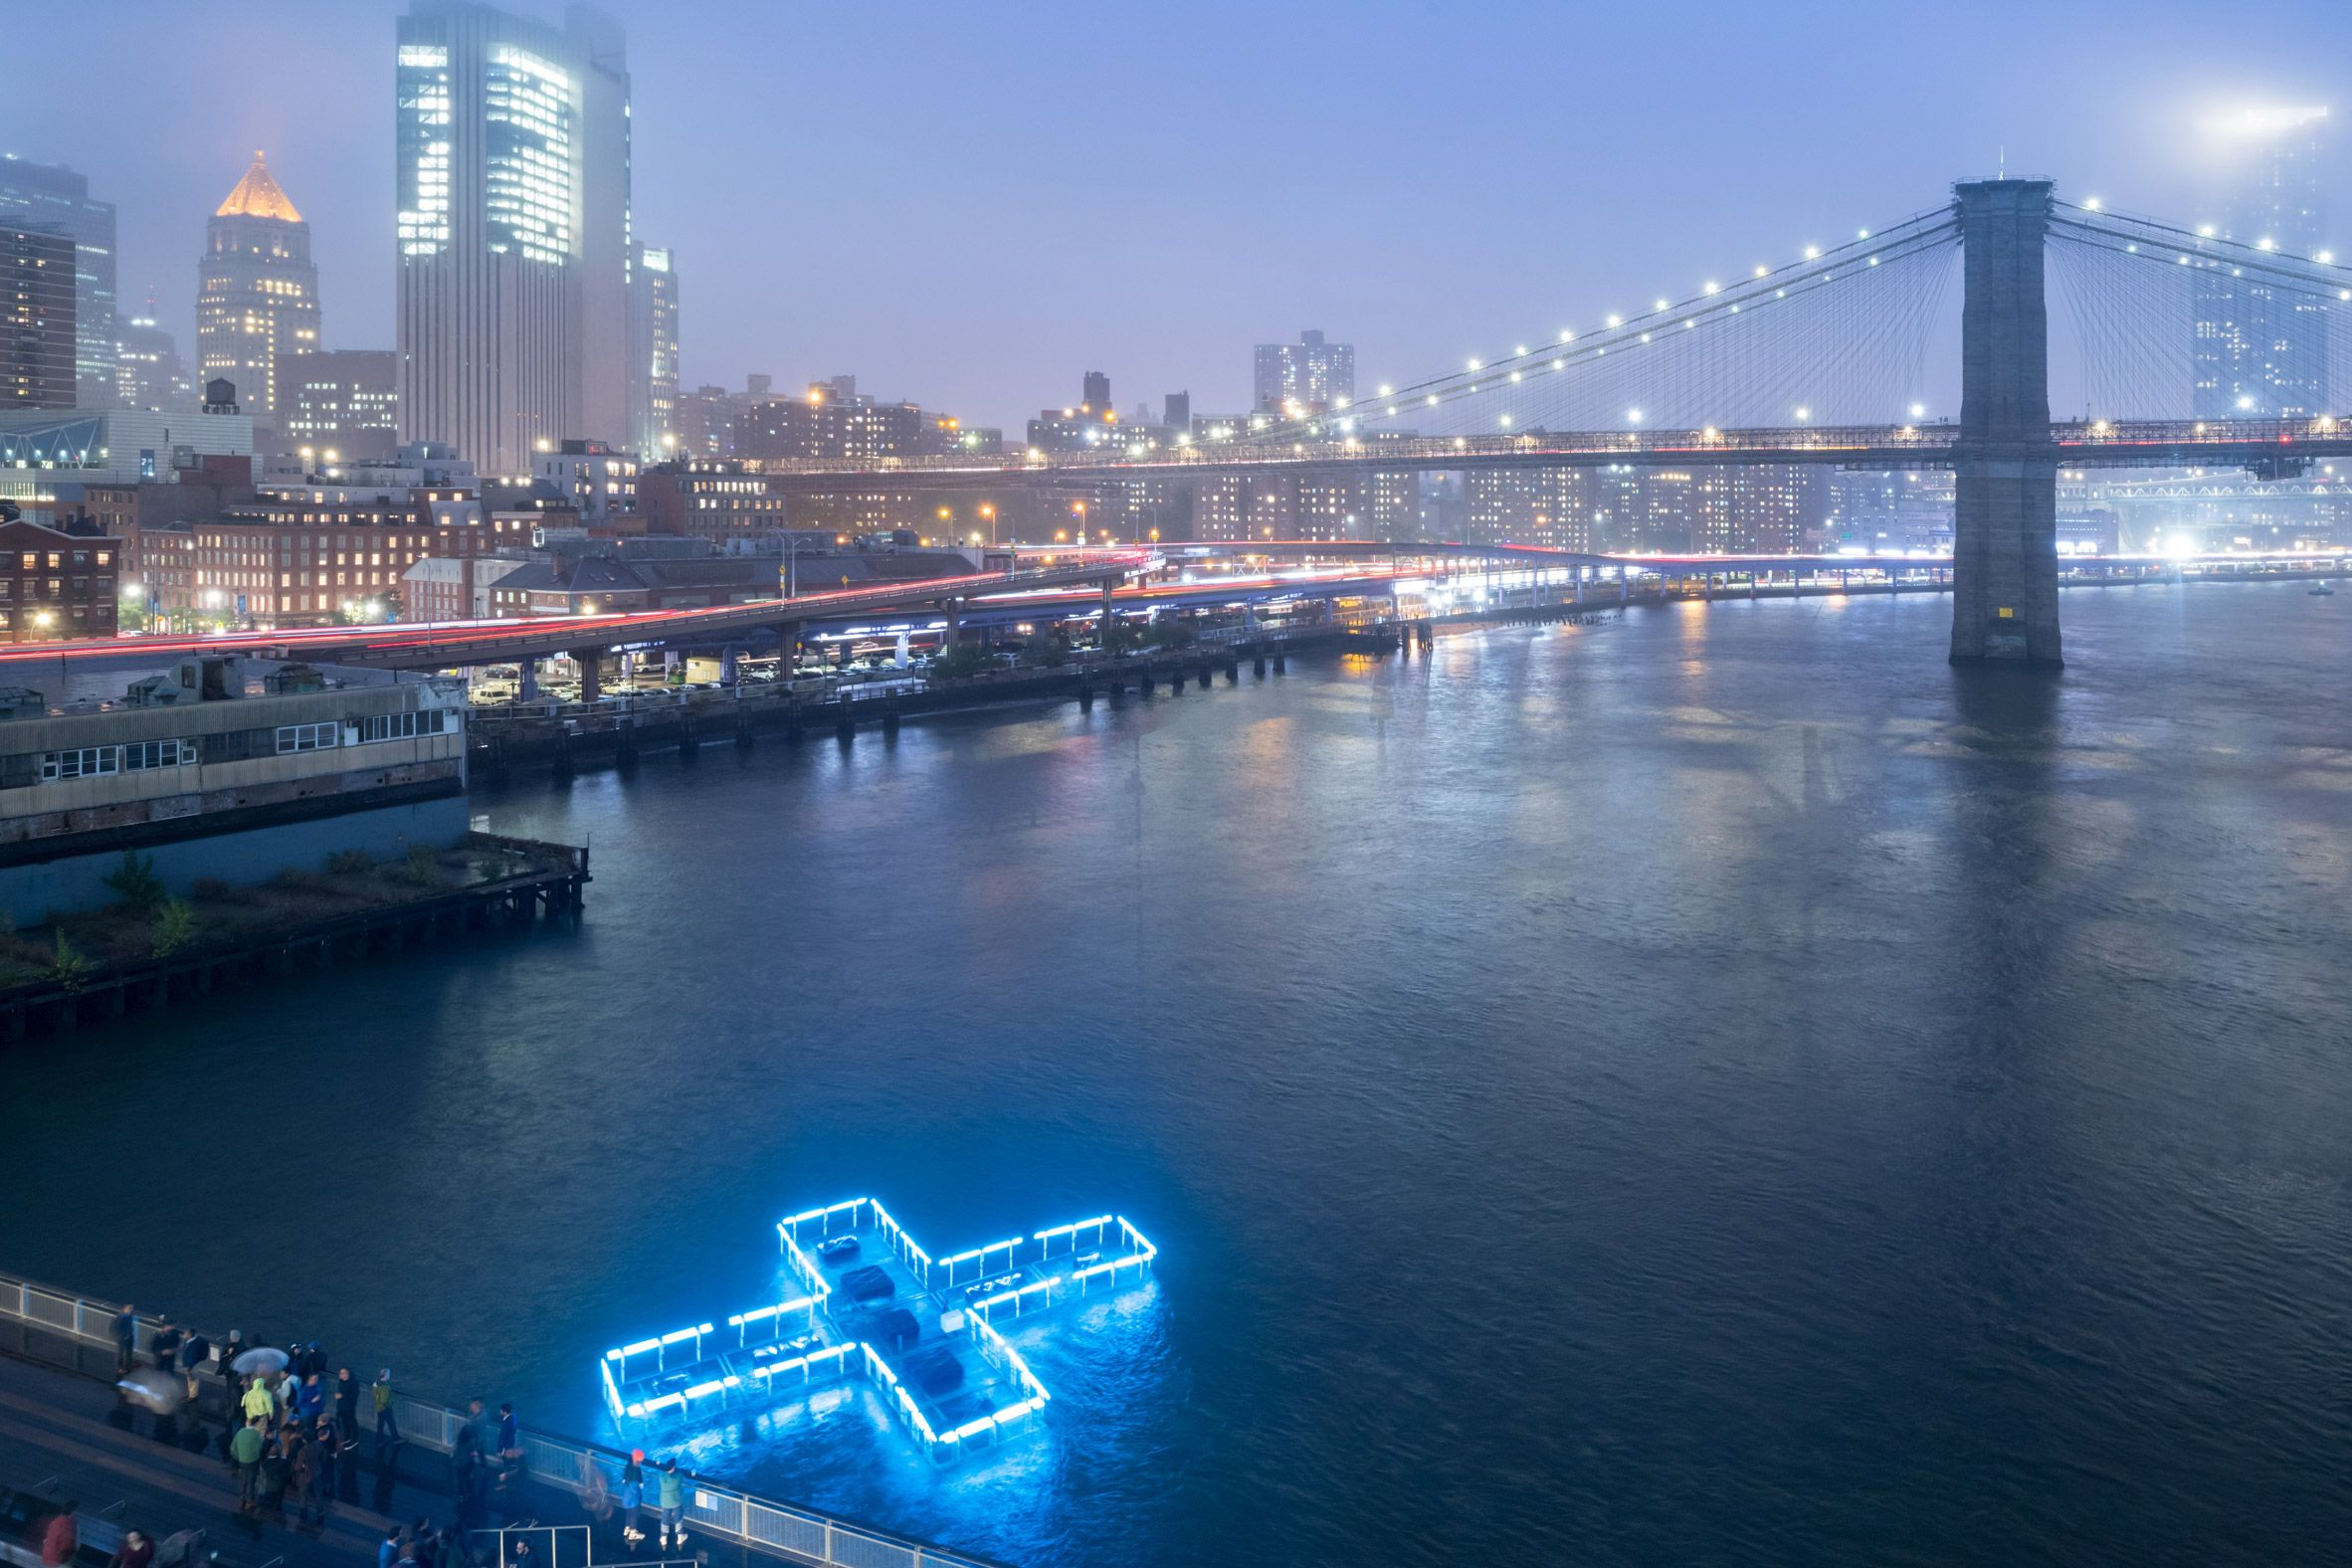 Floating Pool Light Installation Illuminates The East River To Test And Report On Water Quality Floating Pool Lights Light Installation Pool Light